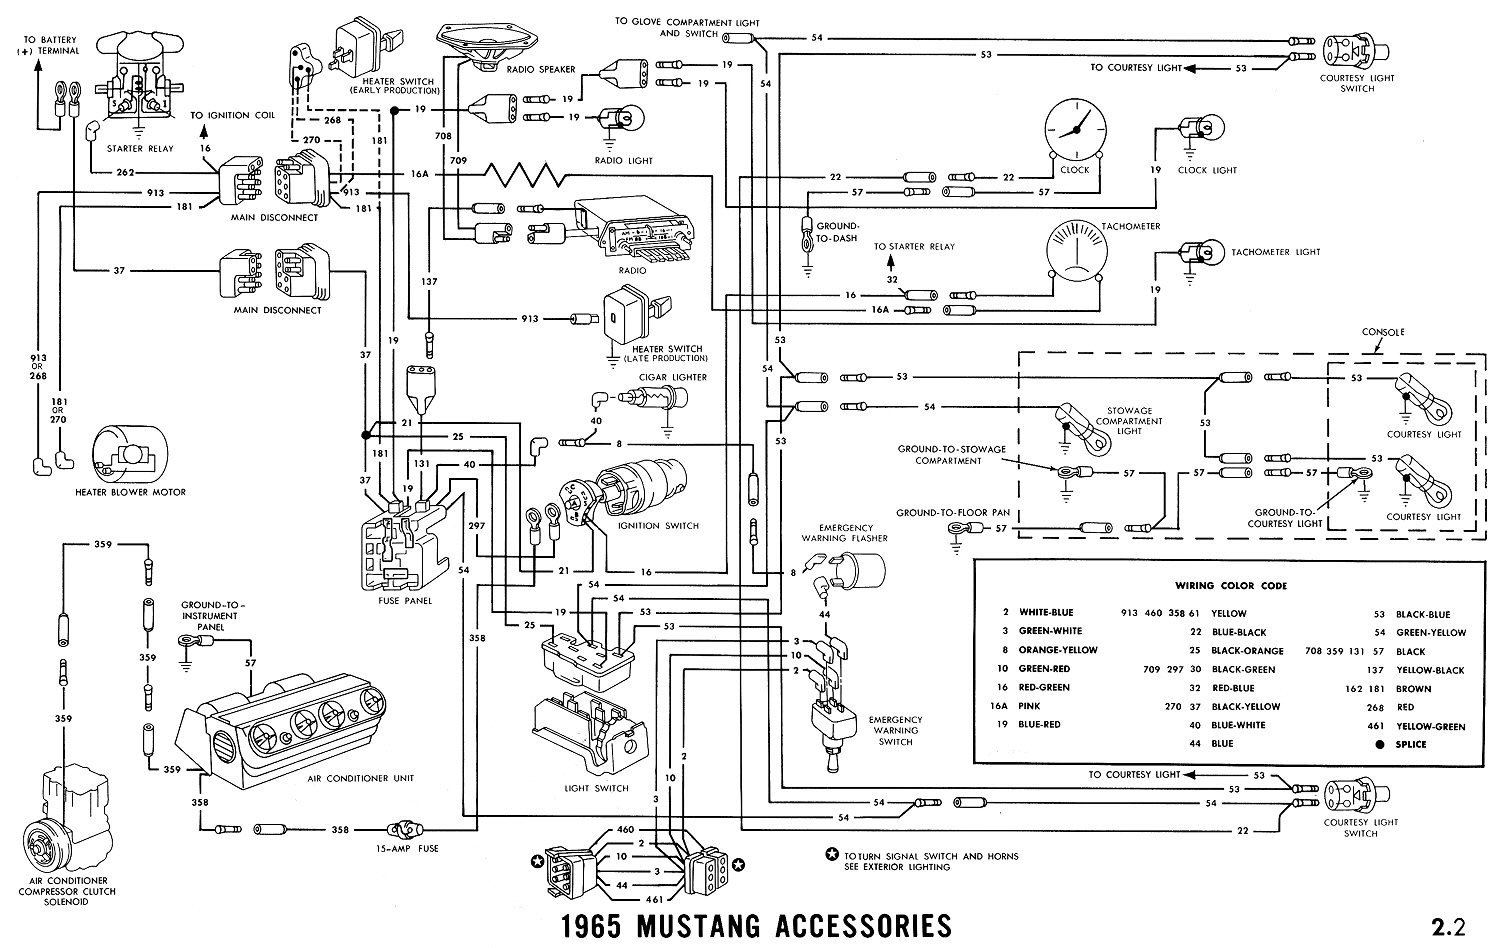 dl5_751] 65 ford mustang wiring diagram | electrical-colunb wiring diagram  value | electrical-colunb.iluoghicomunisullacultura.it  iluoghicomunisullacultura.it